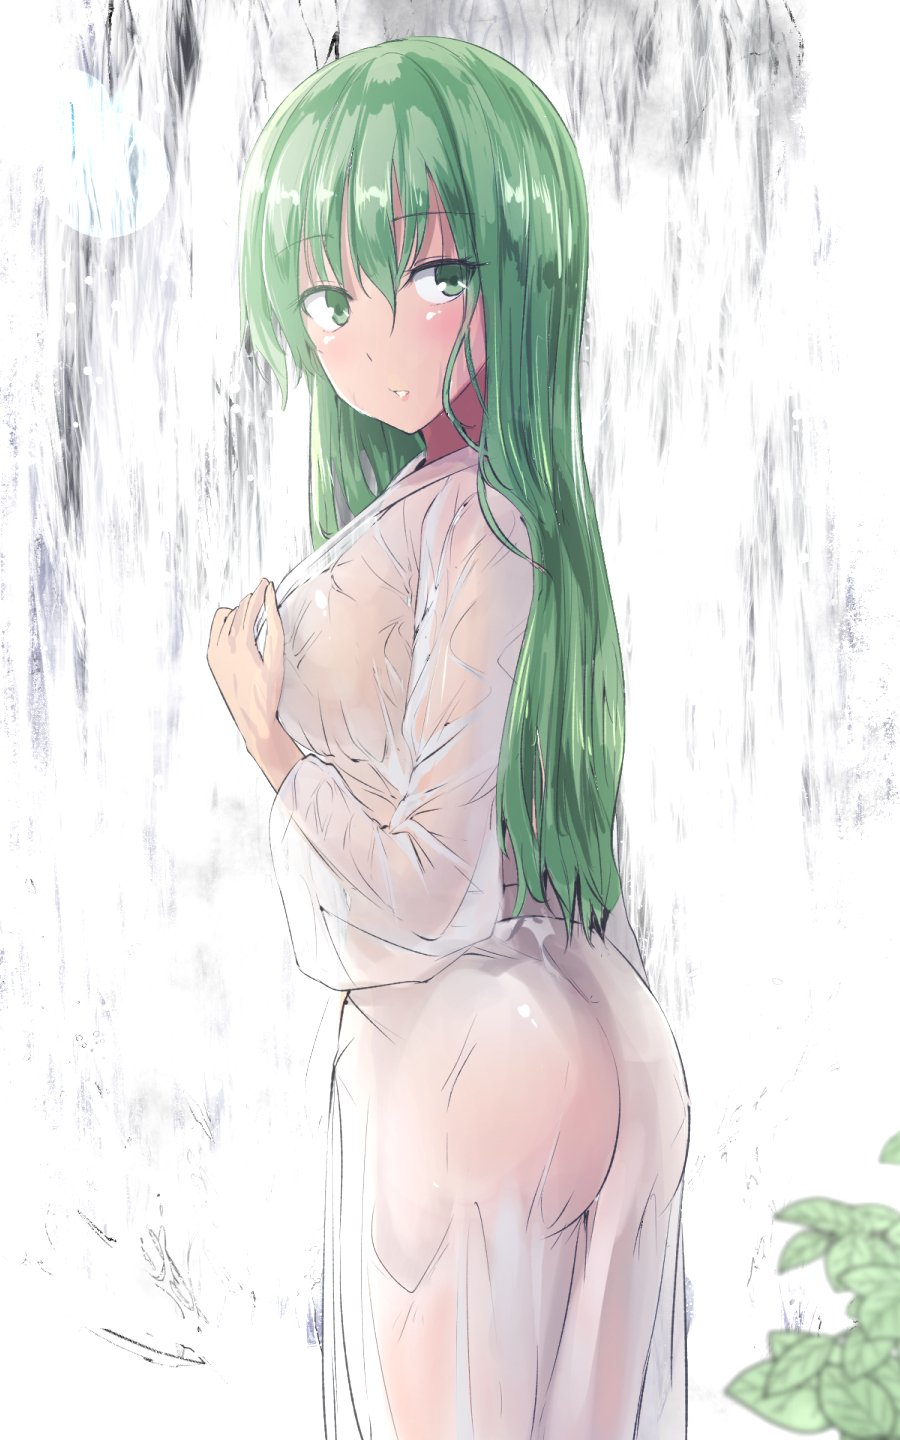 1girl ass bangs blush commentary_request cowboy_shot eyebrows_visible_through_hair from_side green_eyes green_hair hair_between_eyes highres kochiya_sanae leaf long_hair long_sleeves looking_at_viewer parted_lips robe see-through solo standing touhou wet wet_clothes white_background white_robe y2